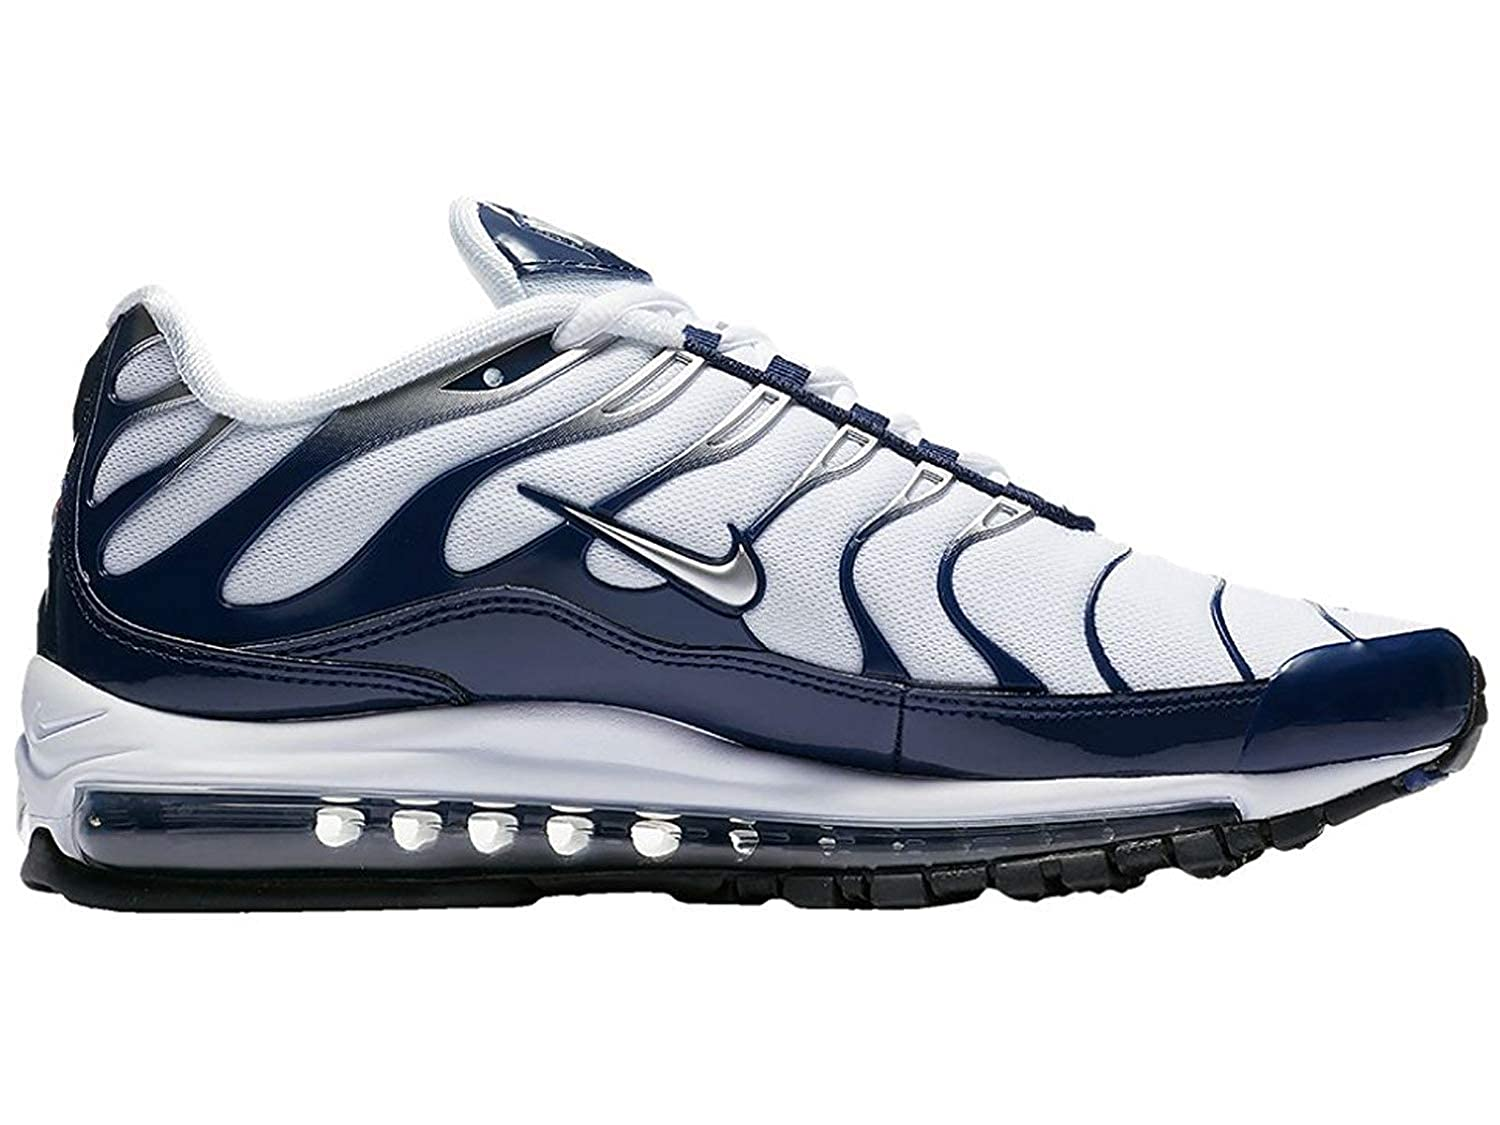 71d4dc0436 Nike Air Max 97 / Plus Mens Running Trainers Ah8144 Sneakers Shoes:  Amazon.co.uk: Shoes & Bags